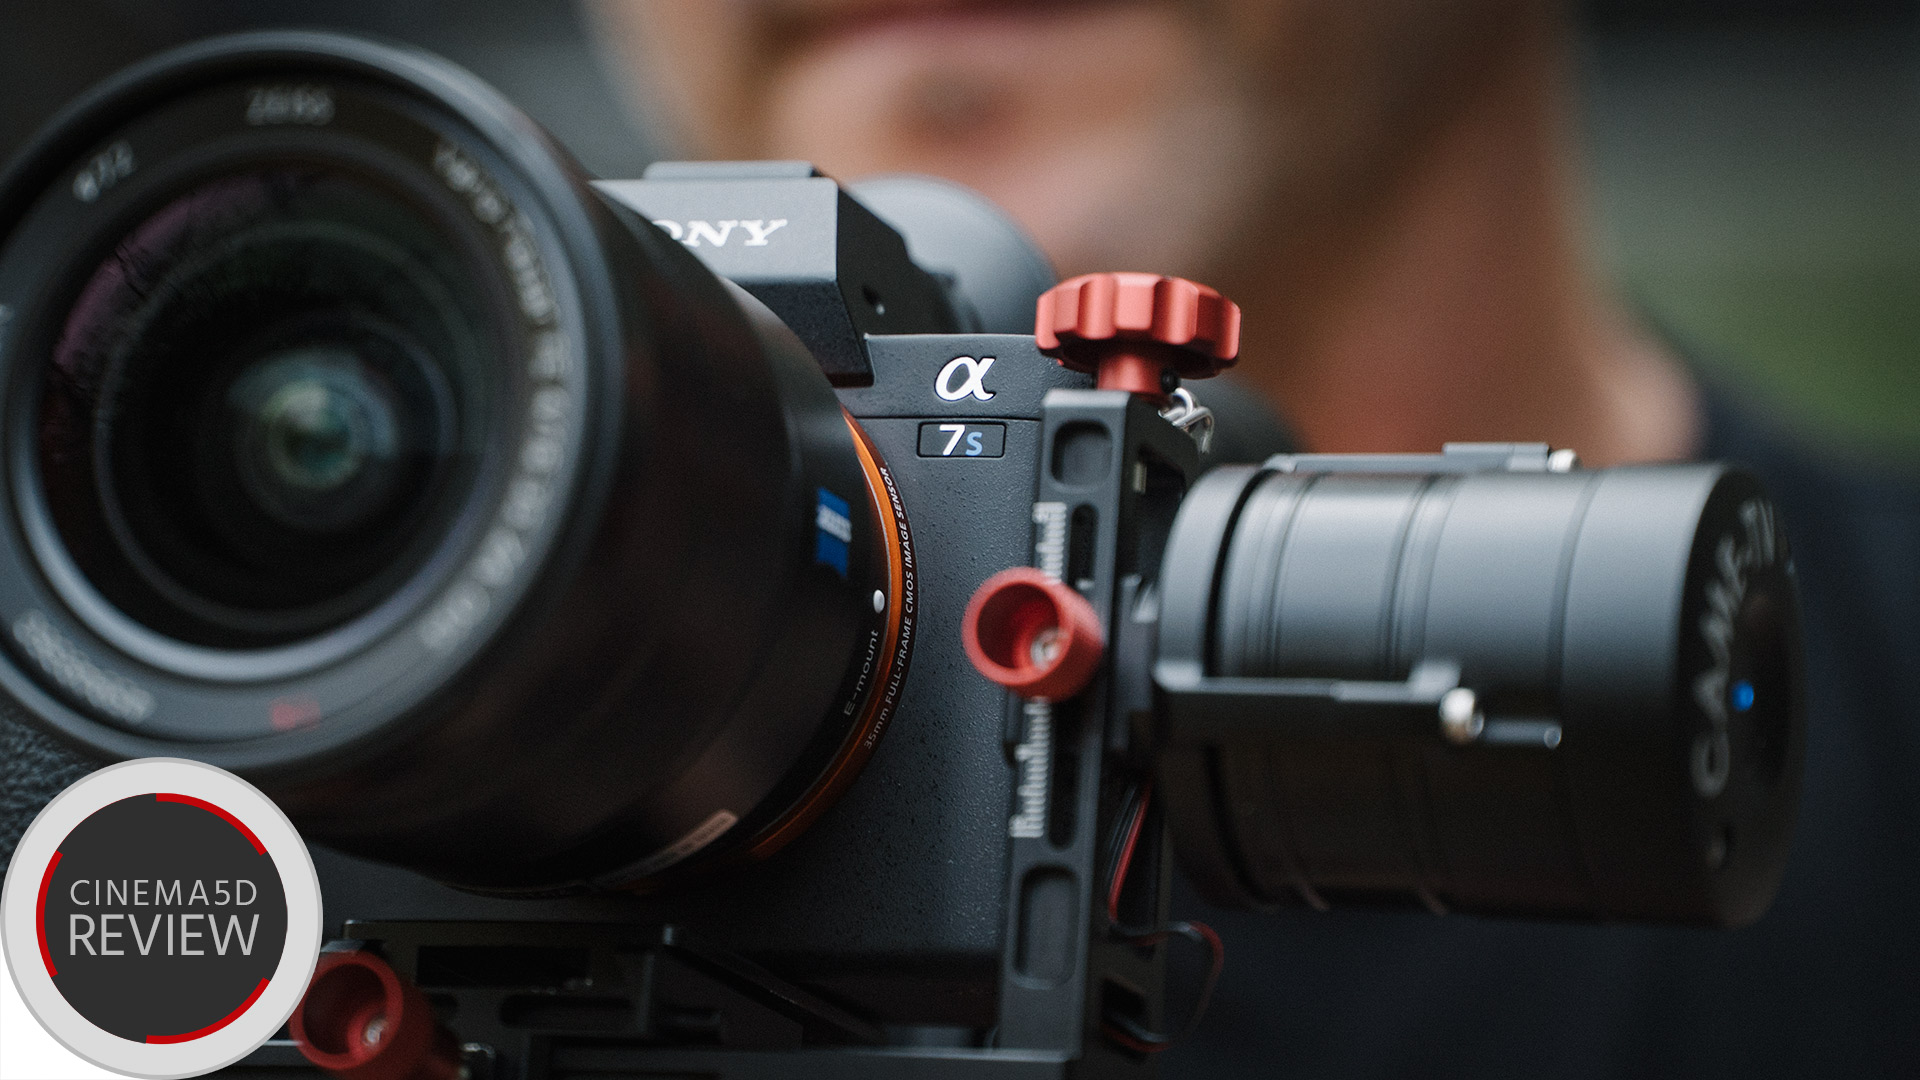 Sony A7s Ii Review First Impressions Footage Cinema5d